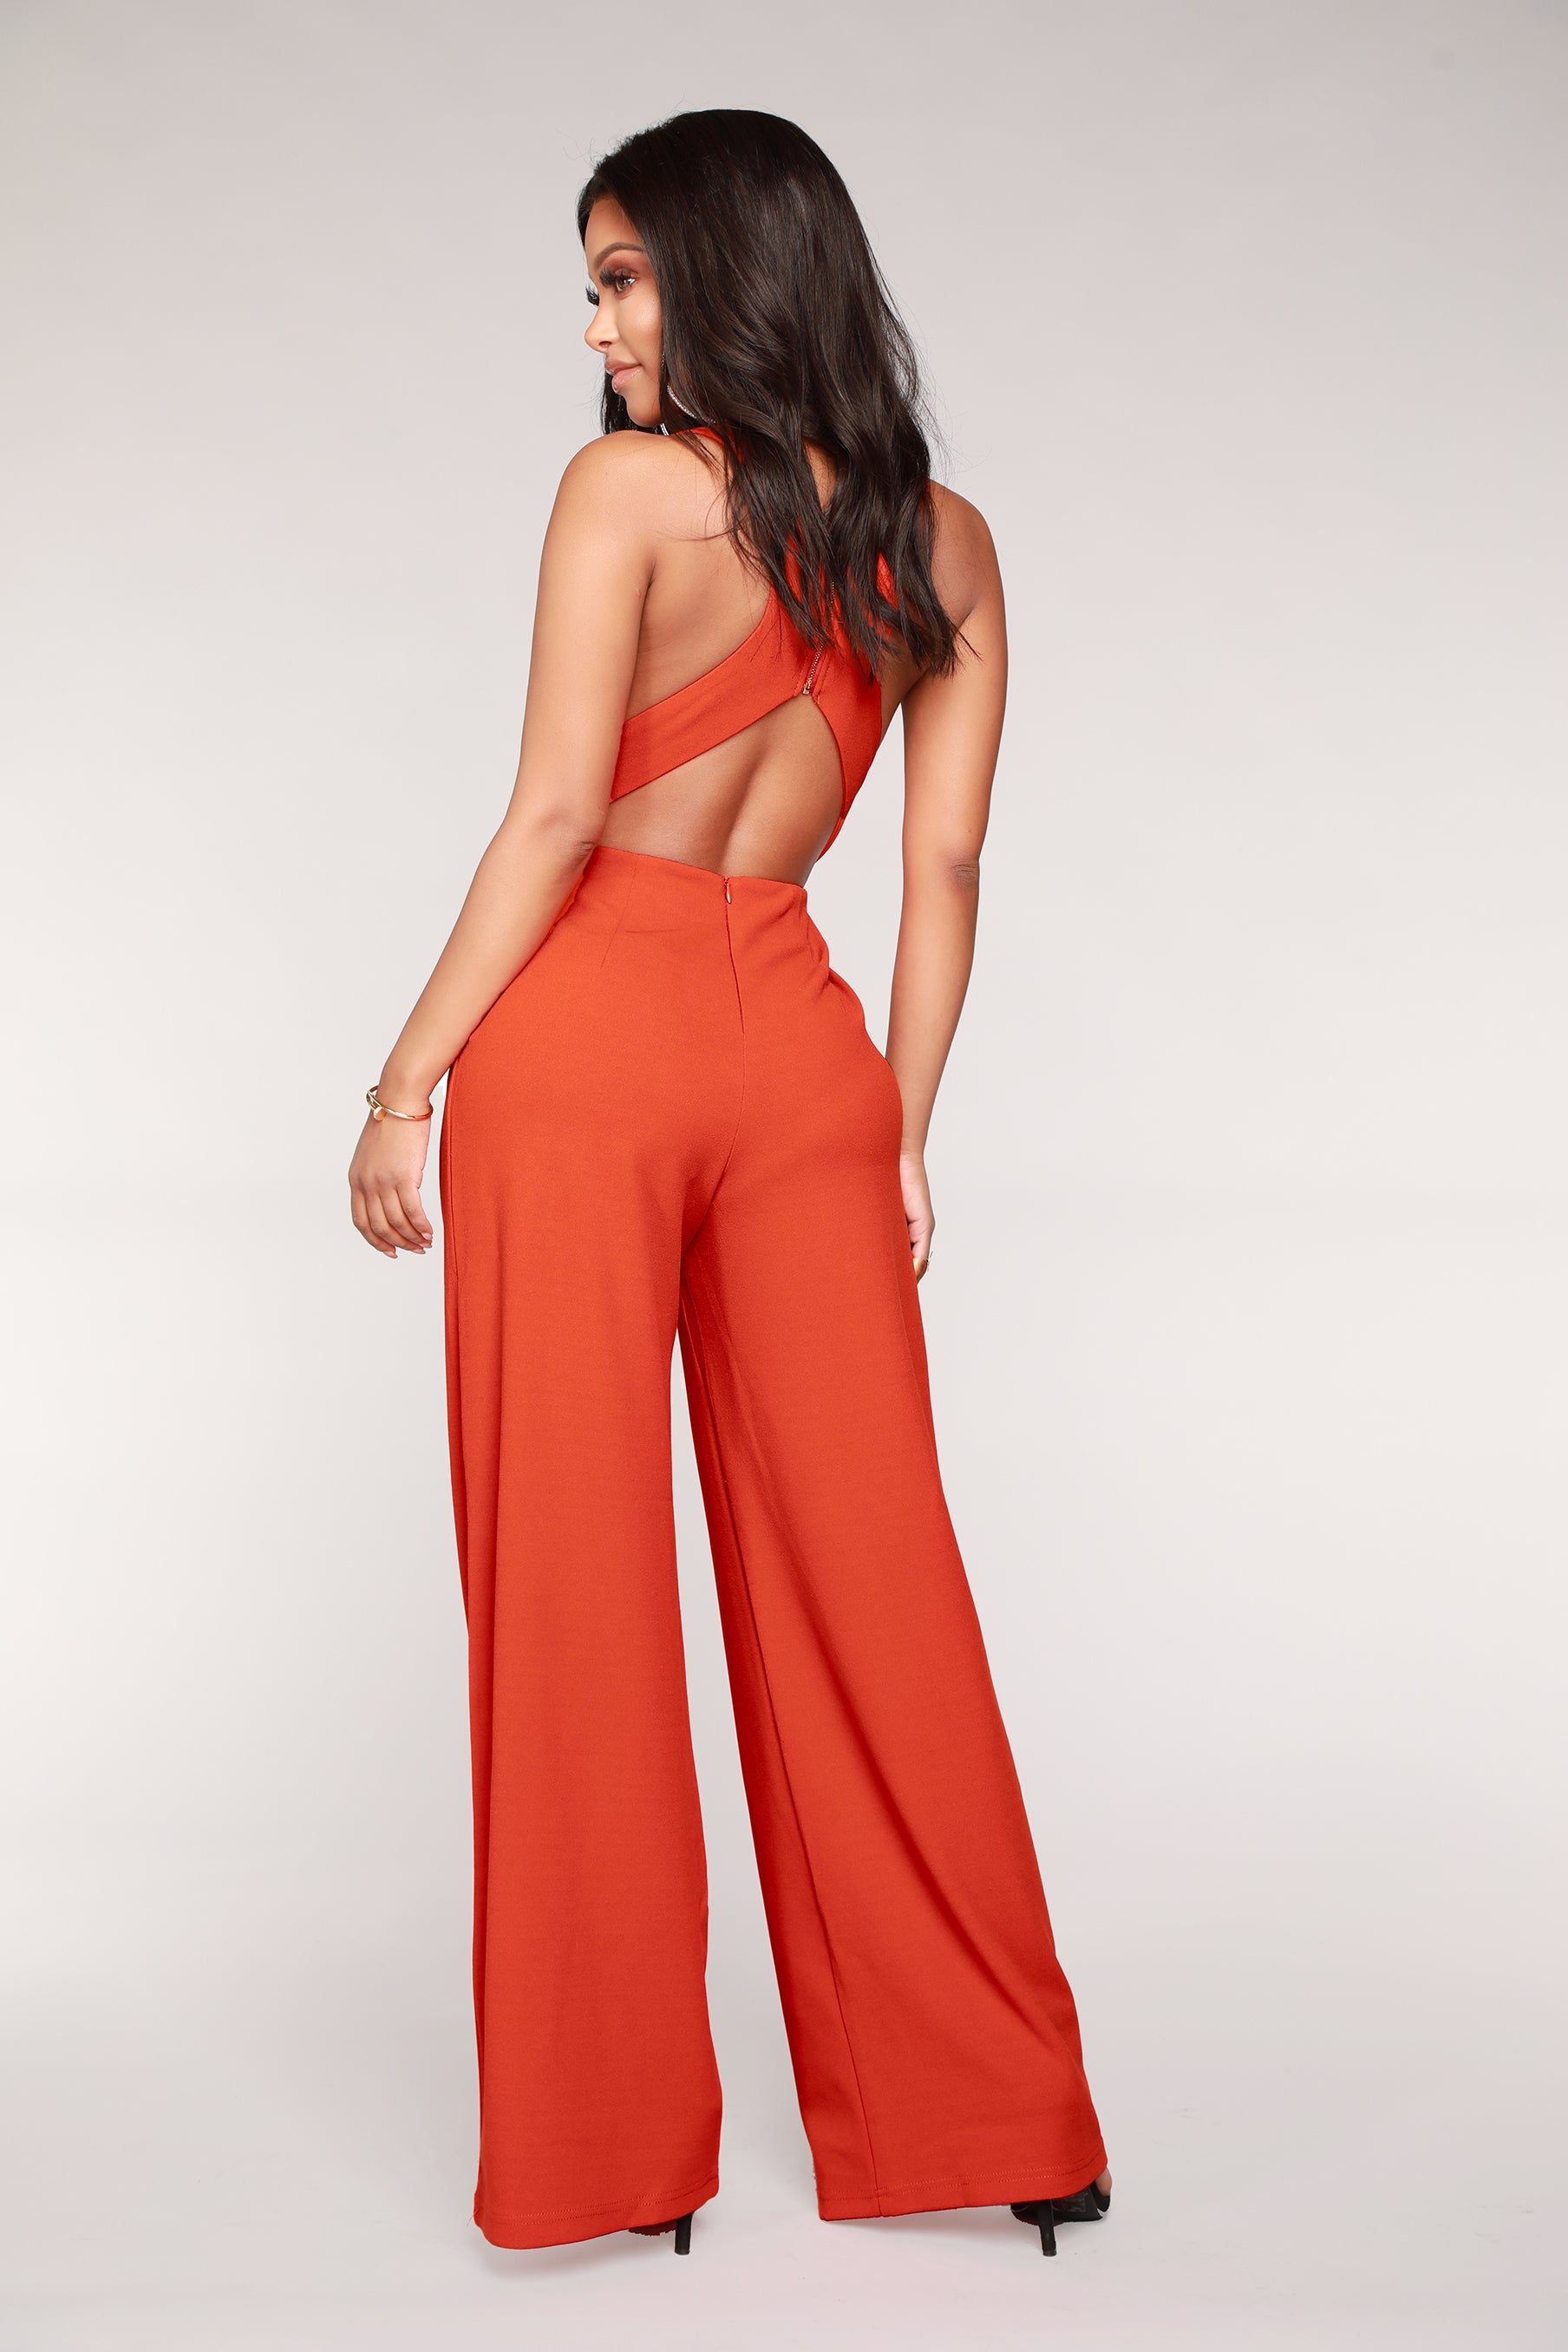 ad960a1b8e0 Love Game Jumpsuit - Orange